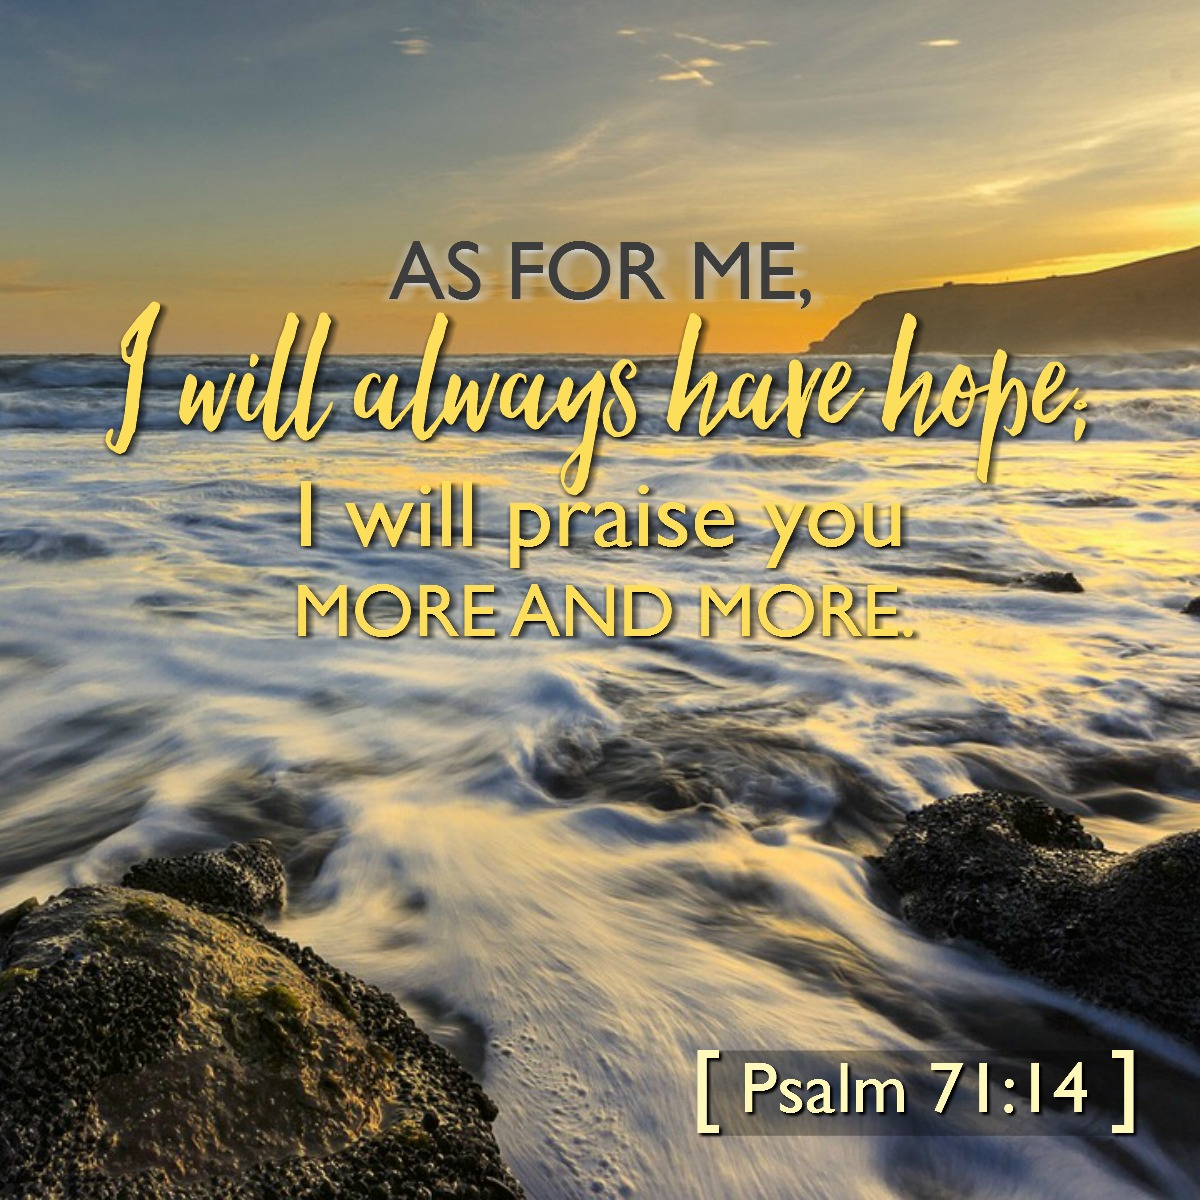 May 1: Psalm 71:14